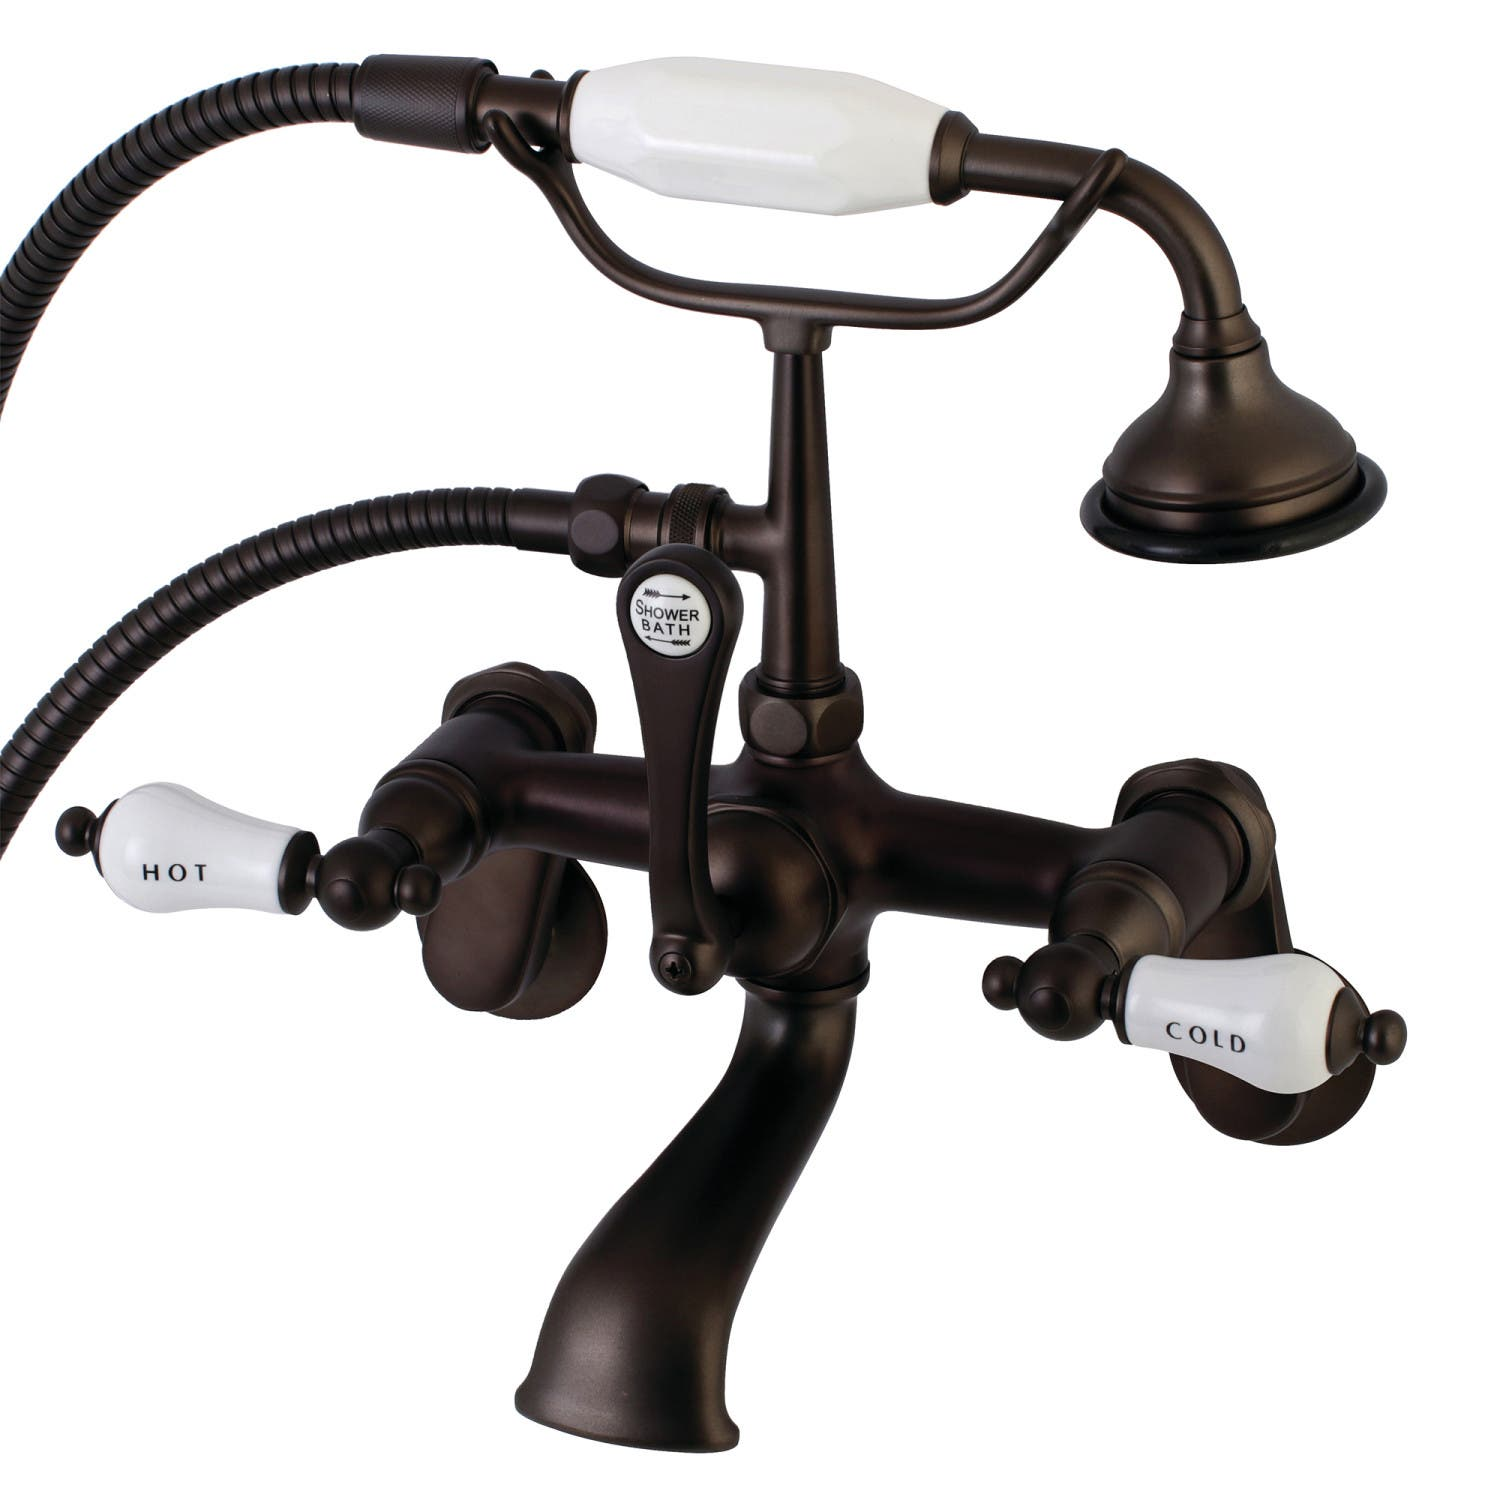 Aqua Vintage AE53T5 Clawfoot Tub Faucet with Hand Shower, Oil Rubbed ...